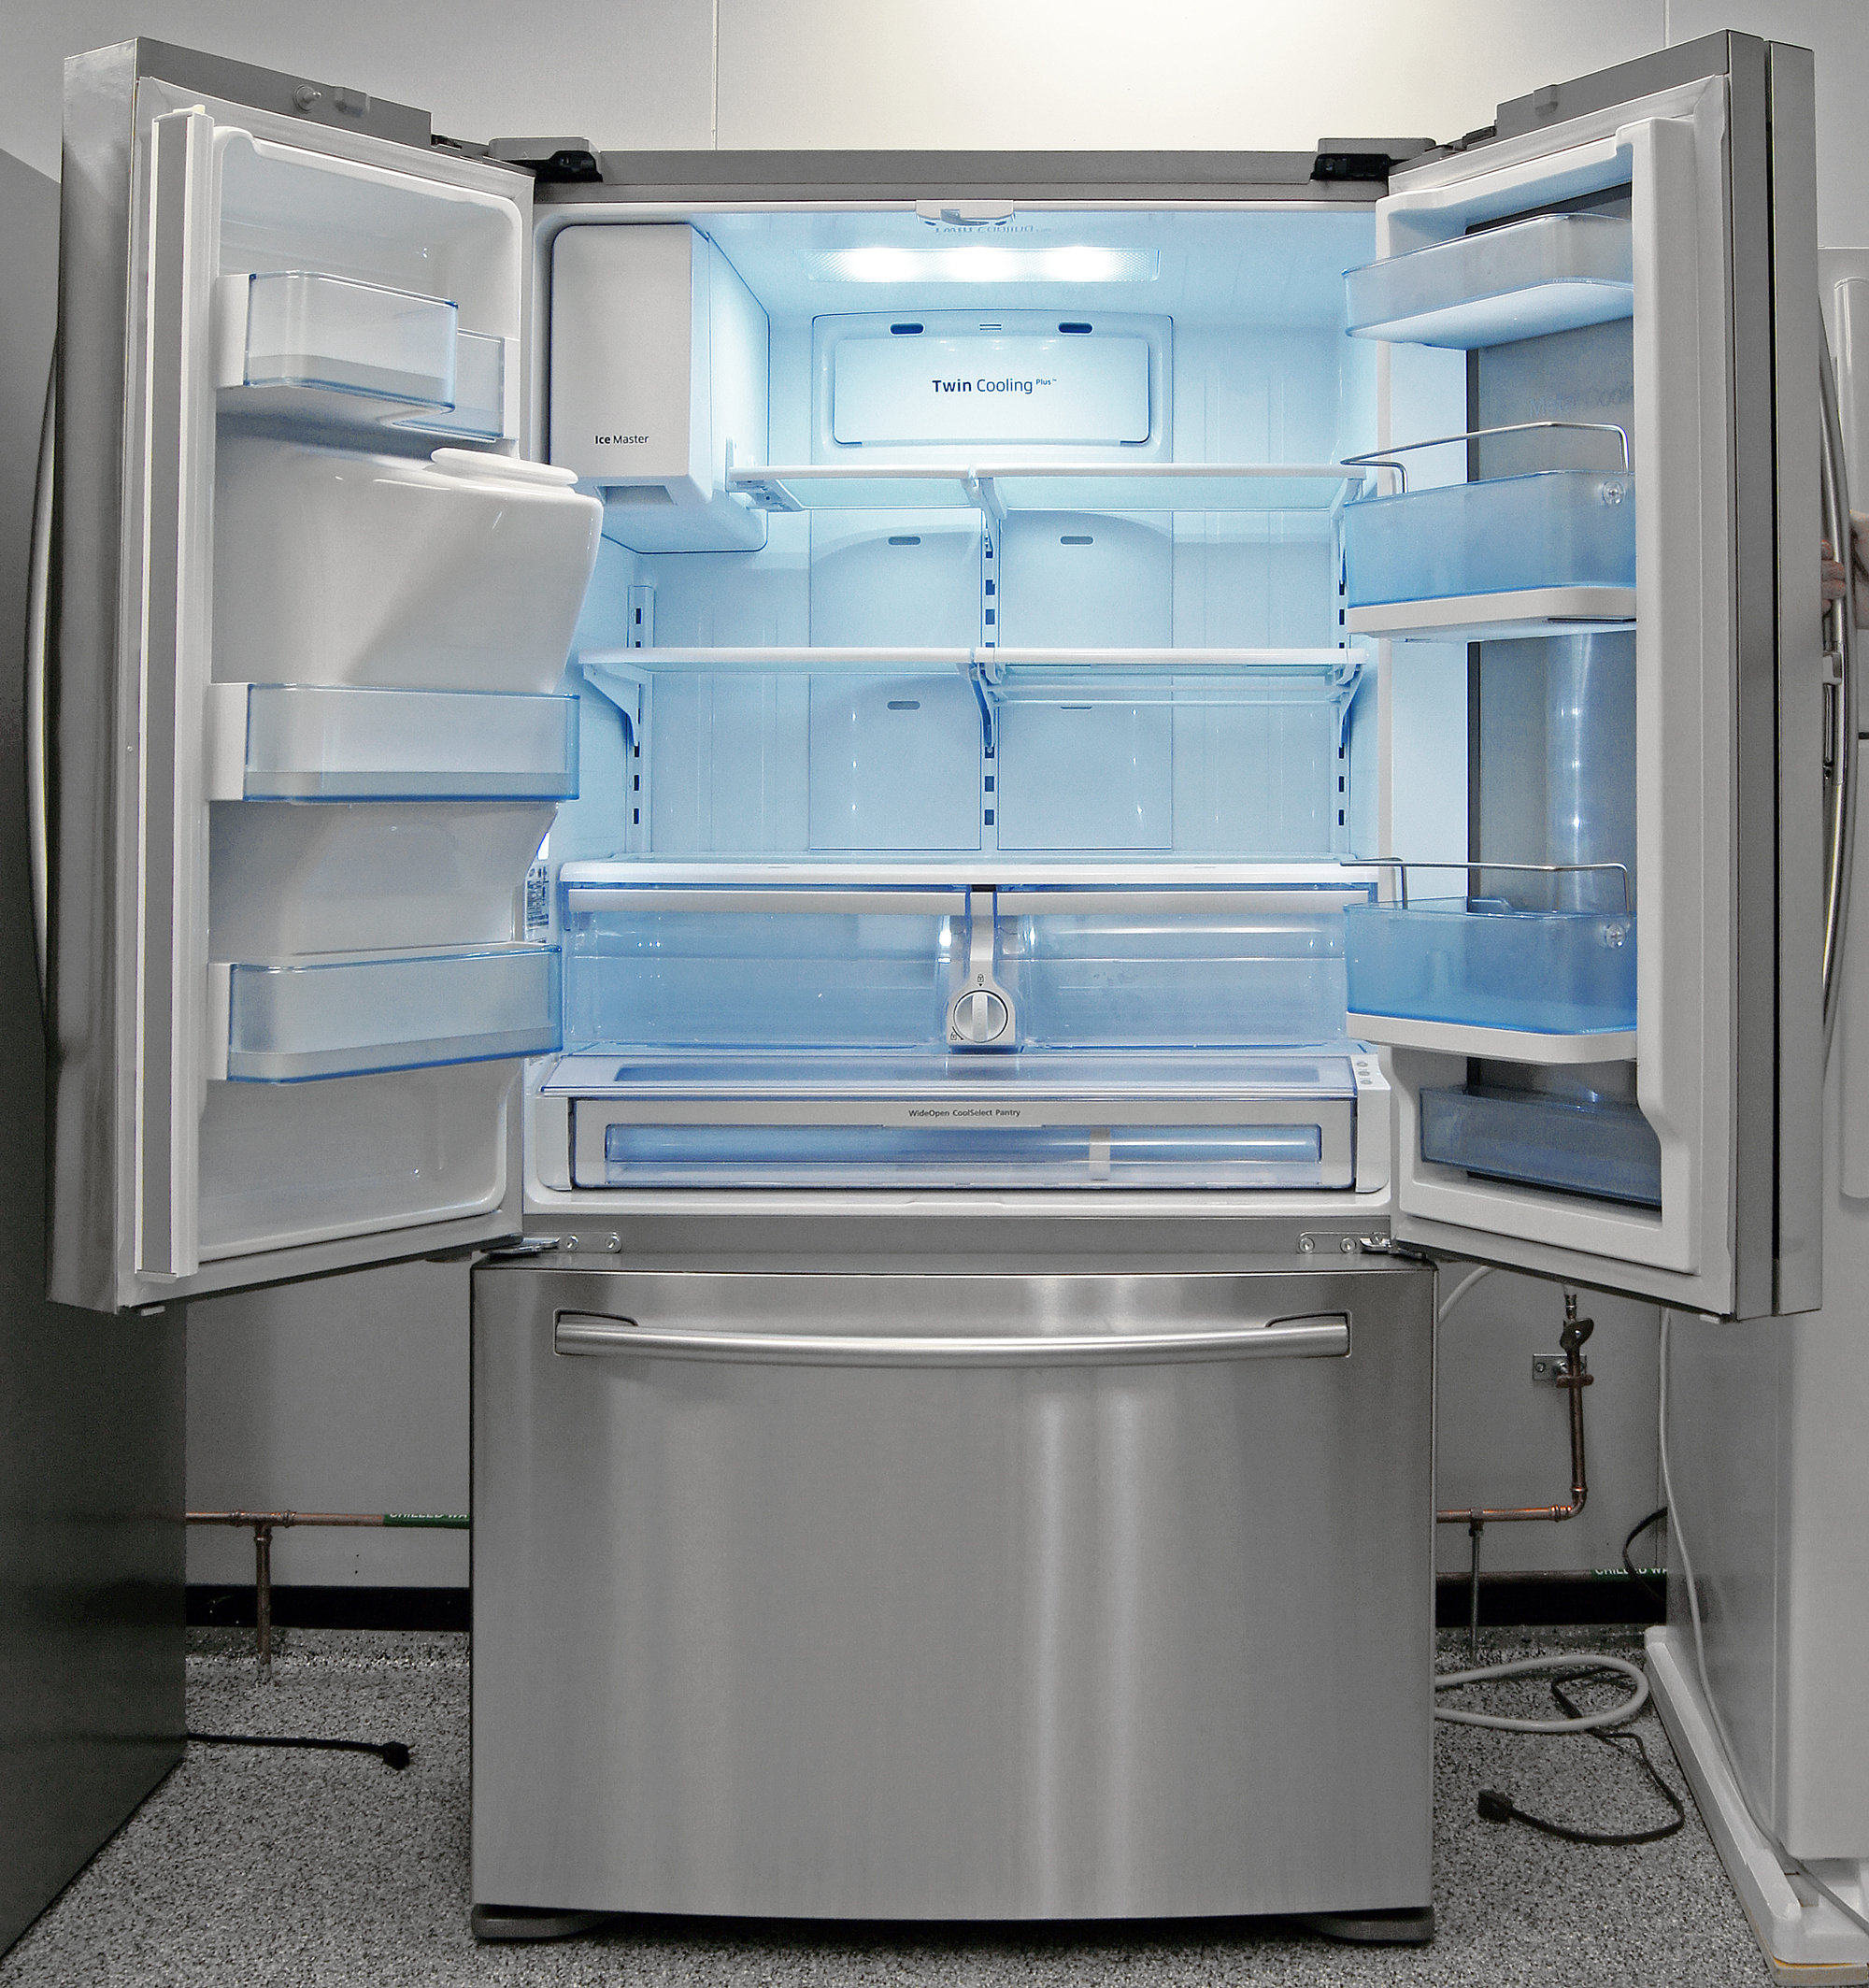 Even counter-depth fridges like the Samsung RF23HTEDBSR can be roomy enough for small families.